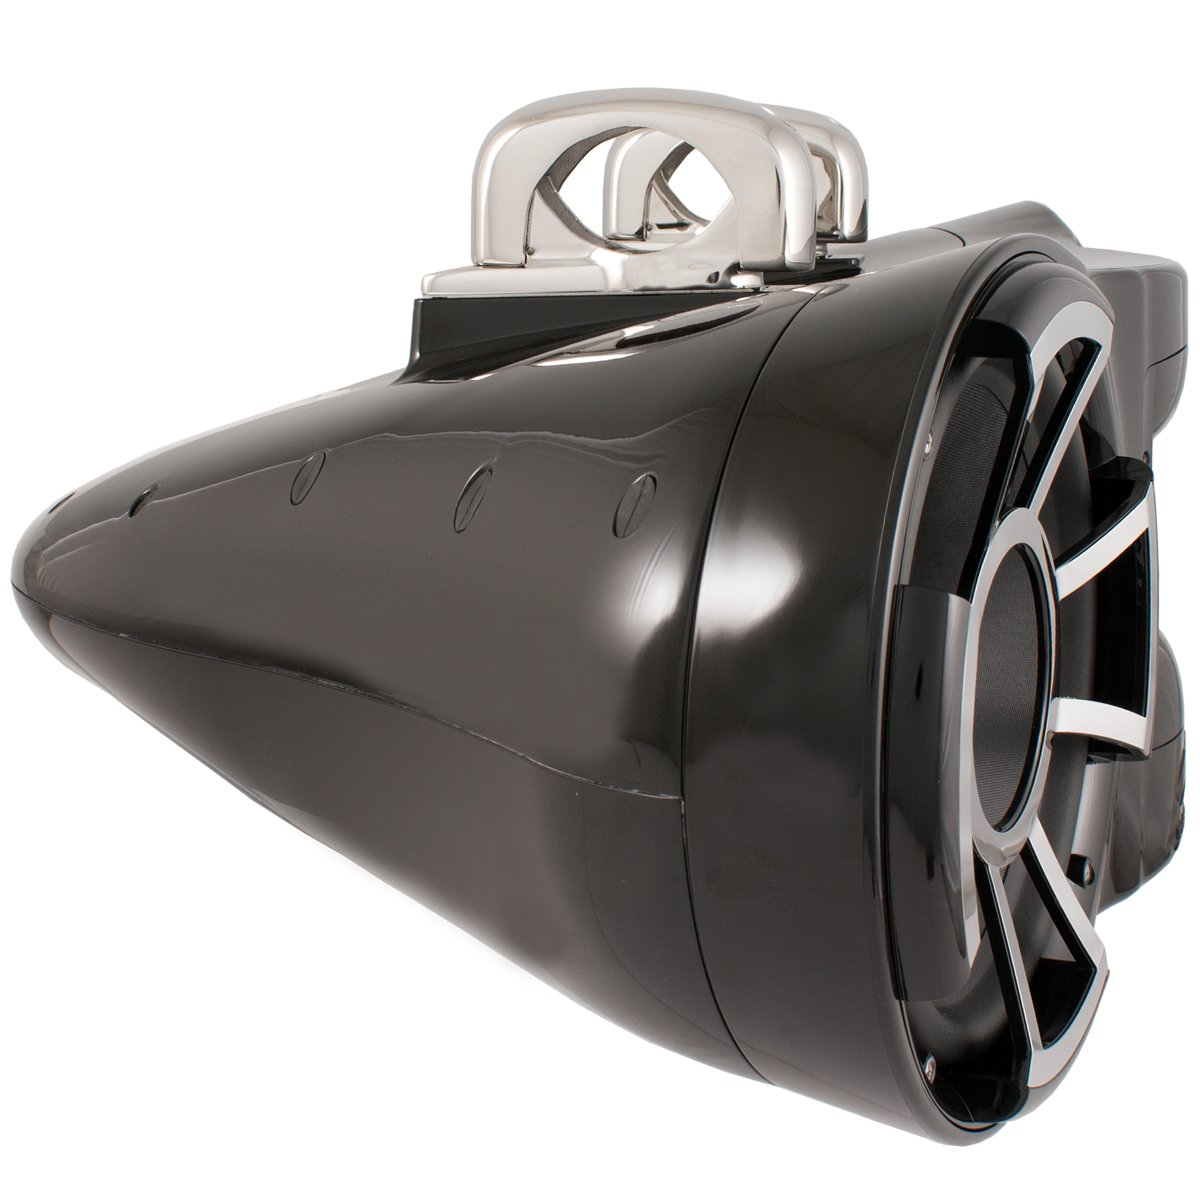 Wet Sounds Revolution Series Dual 10 inch EFG HLCD Tower Speaker - Black w/ Fixed Clamp by Wet Sounds (Image #2)